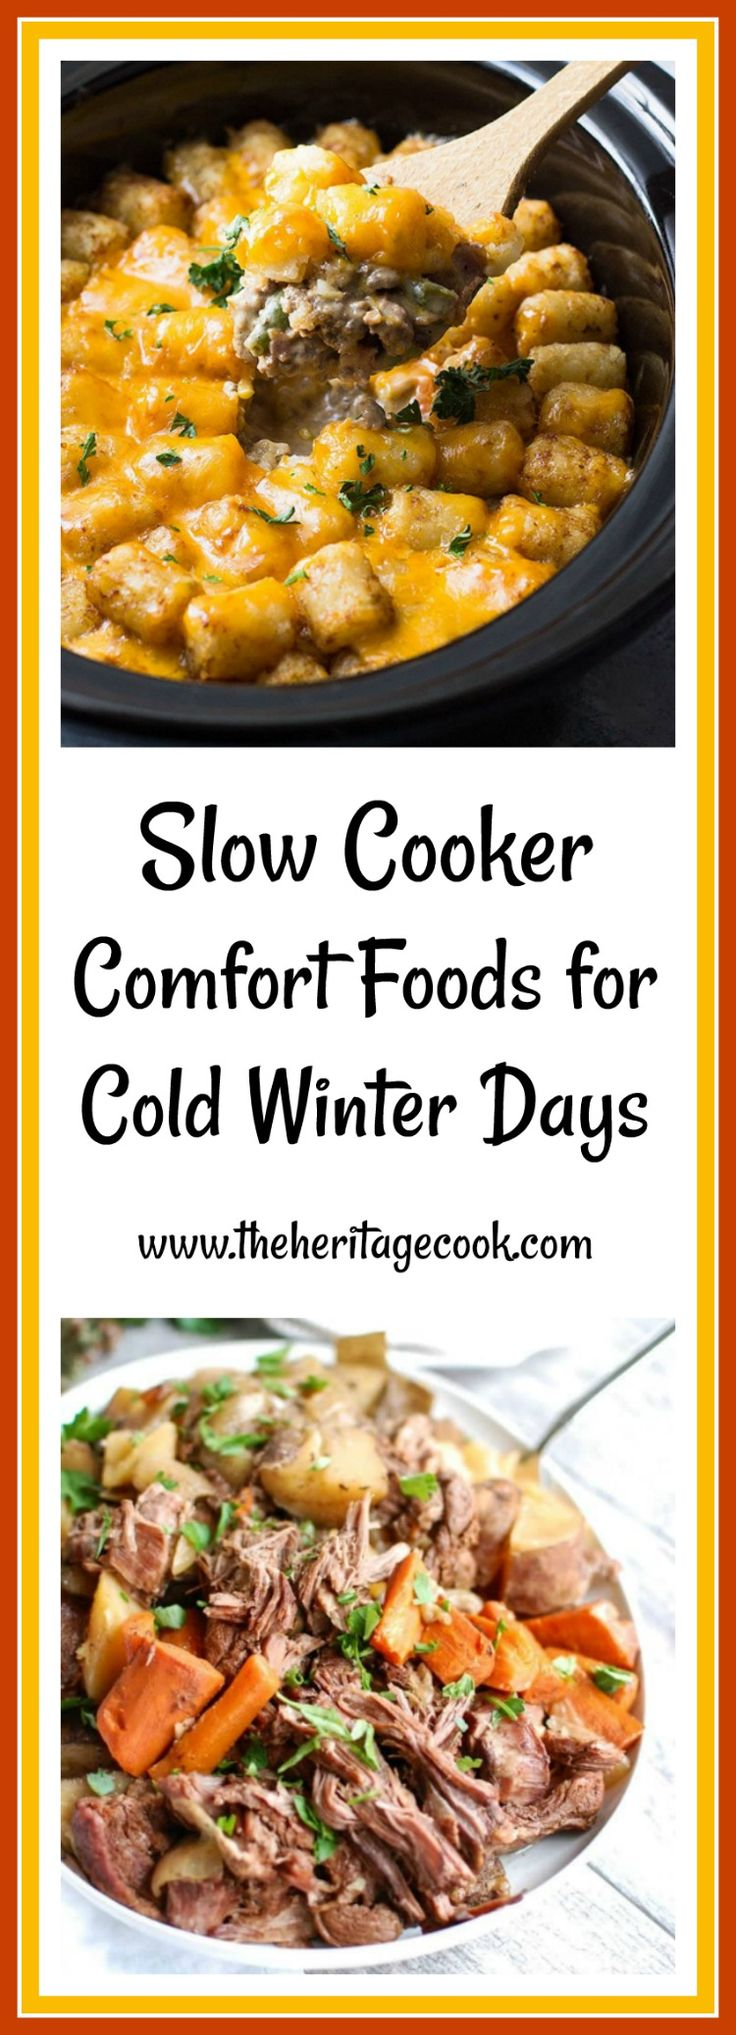 From soups that are perfect for lunch or as a starter for dinner, to full blown main courses, you will find lots of tantalizing recipes your family will love in today's post. Thanks so much for sharing and visiting The Heritage Cook! #comfortfood #slowcooker #crockpot